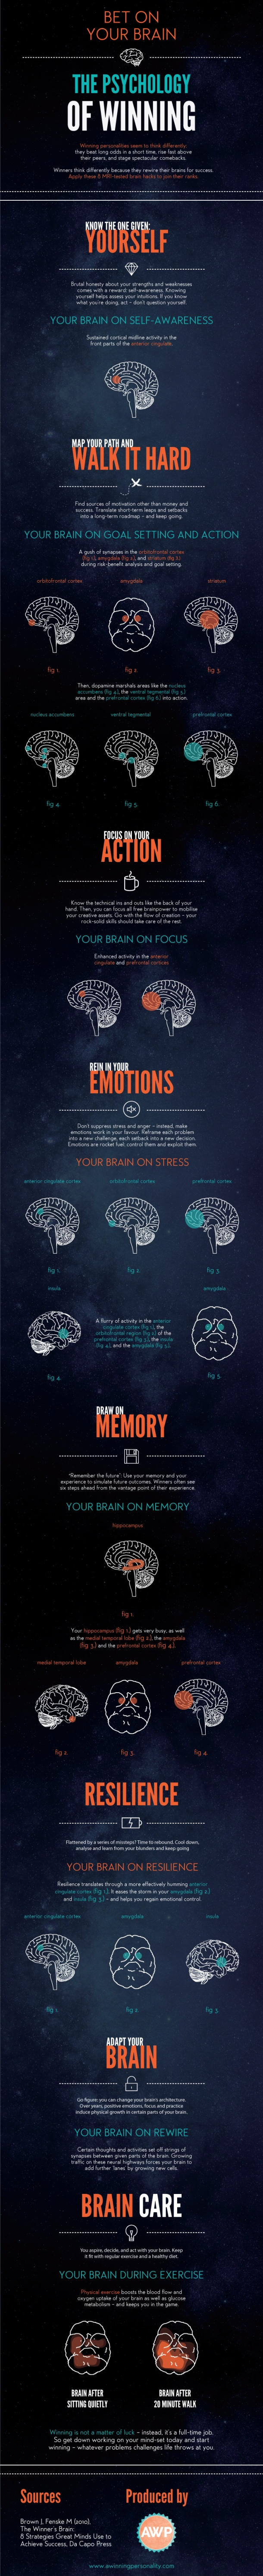 Bet-on-your-Brain-The-Psychology-of-Winning